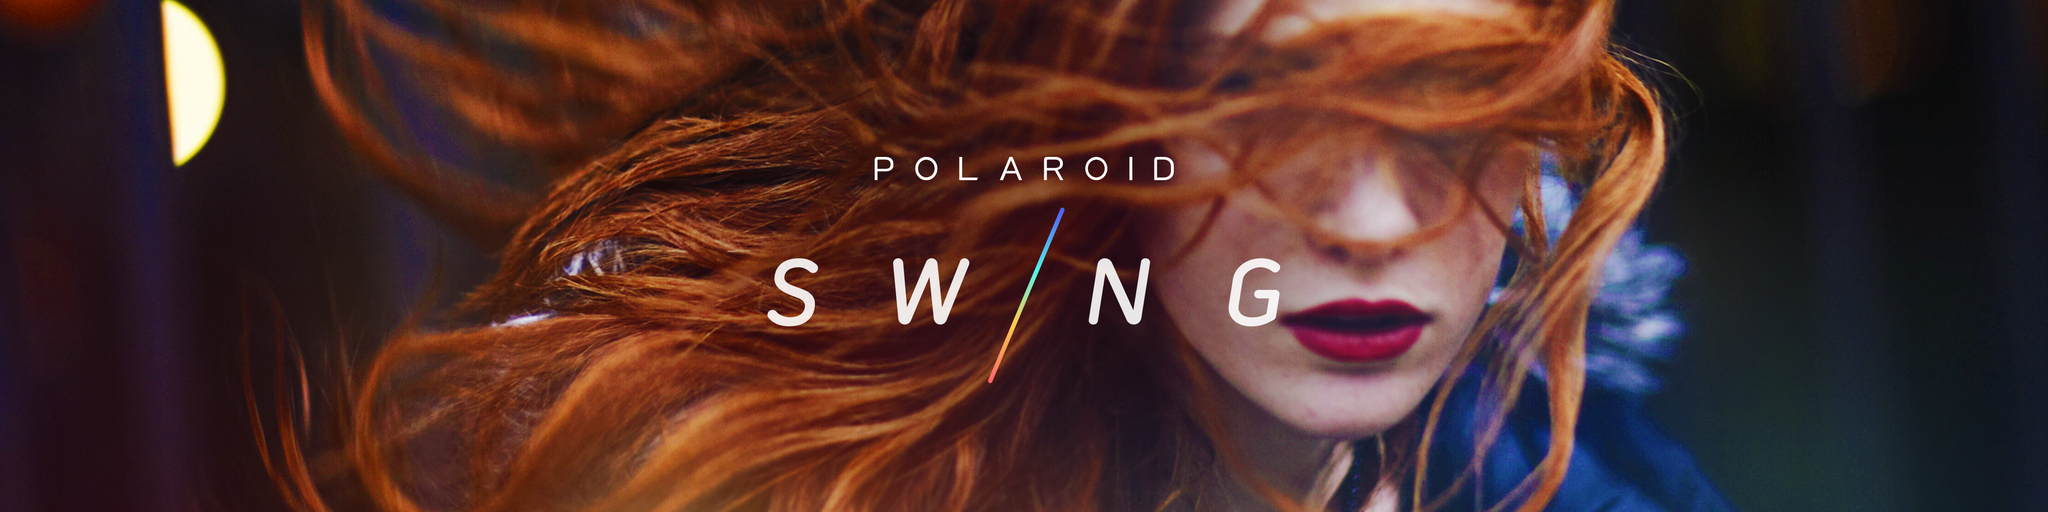 Polaroid Swing Banner